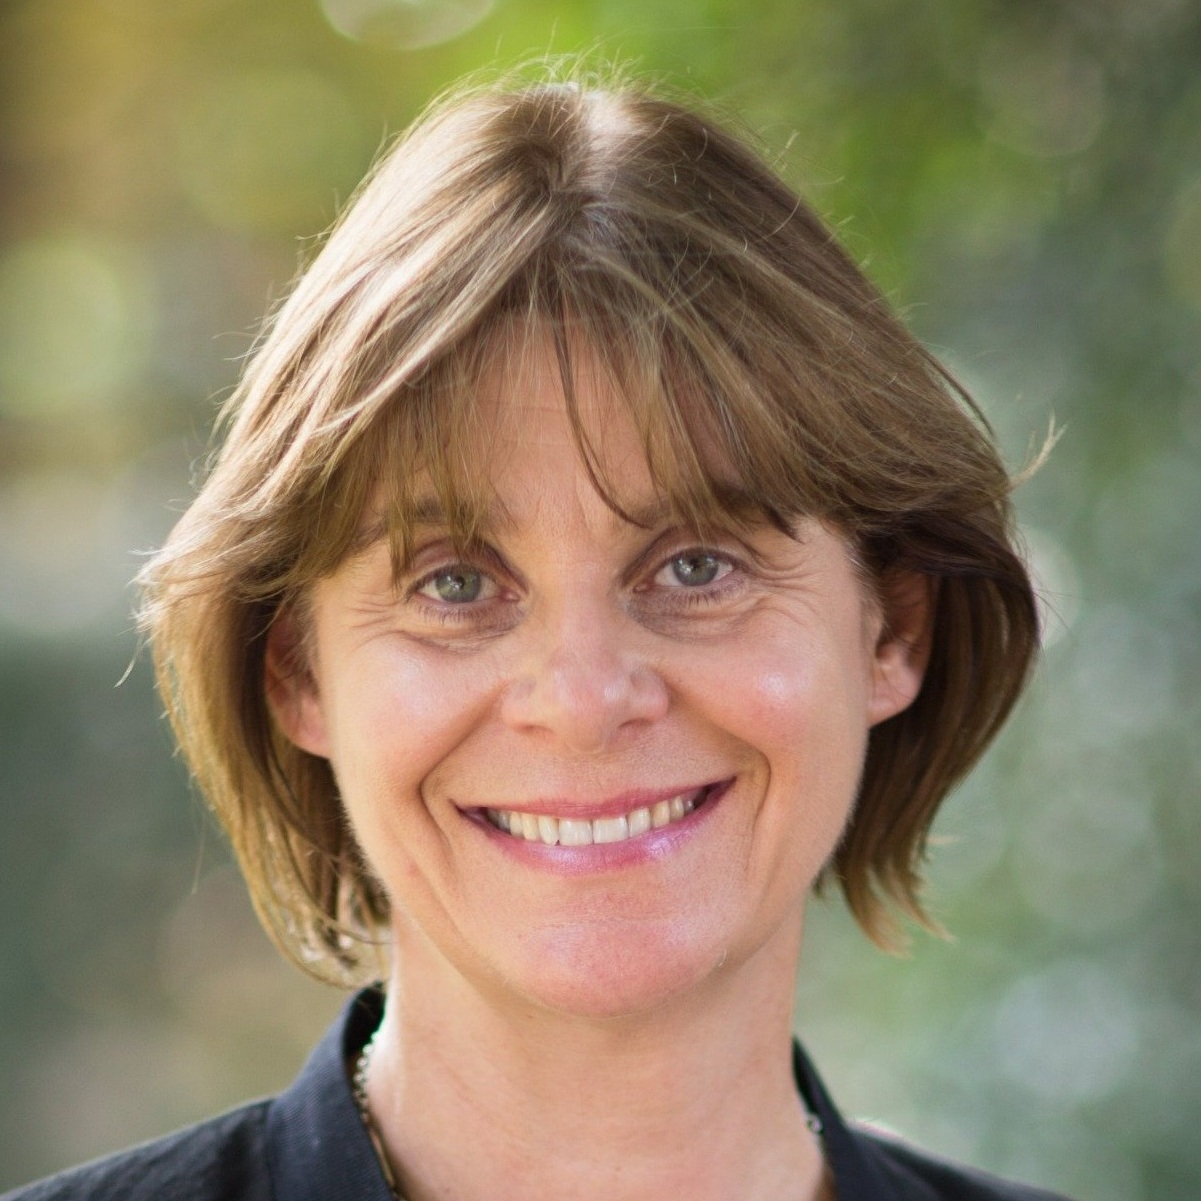 Professor Sarah Harper - Gerontology, University of Oxford; Fellow, University College; Founding Director of the Oxford Institute of Population Ageing